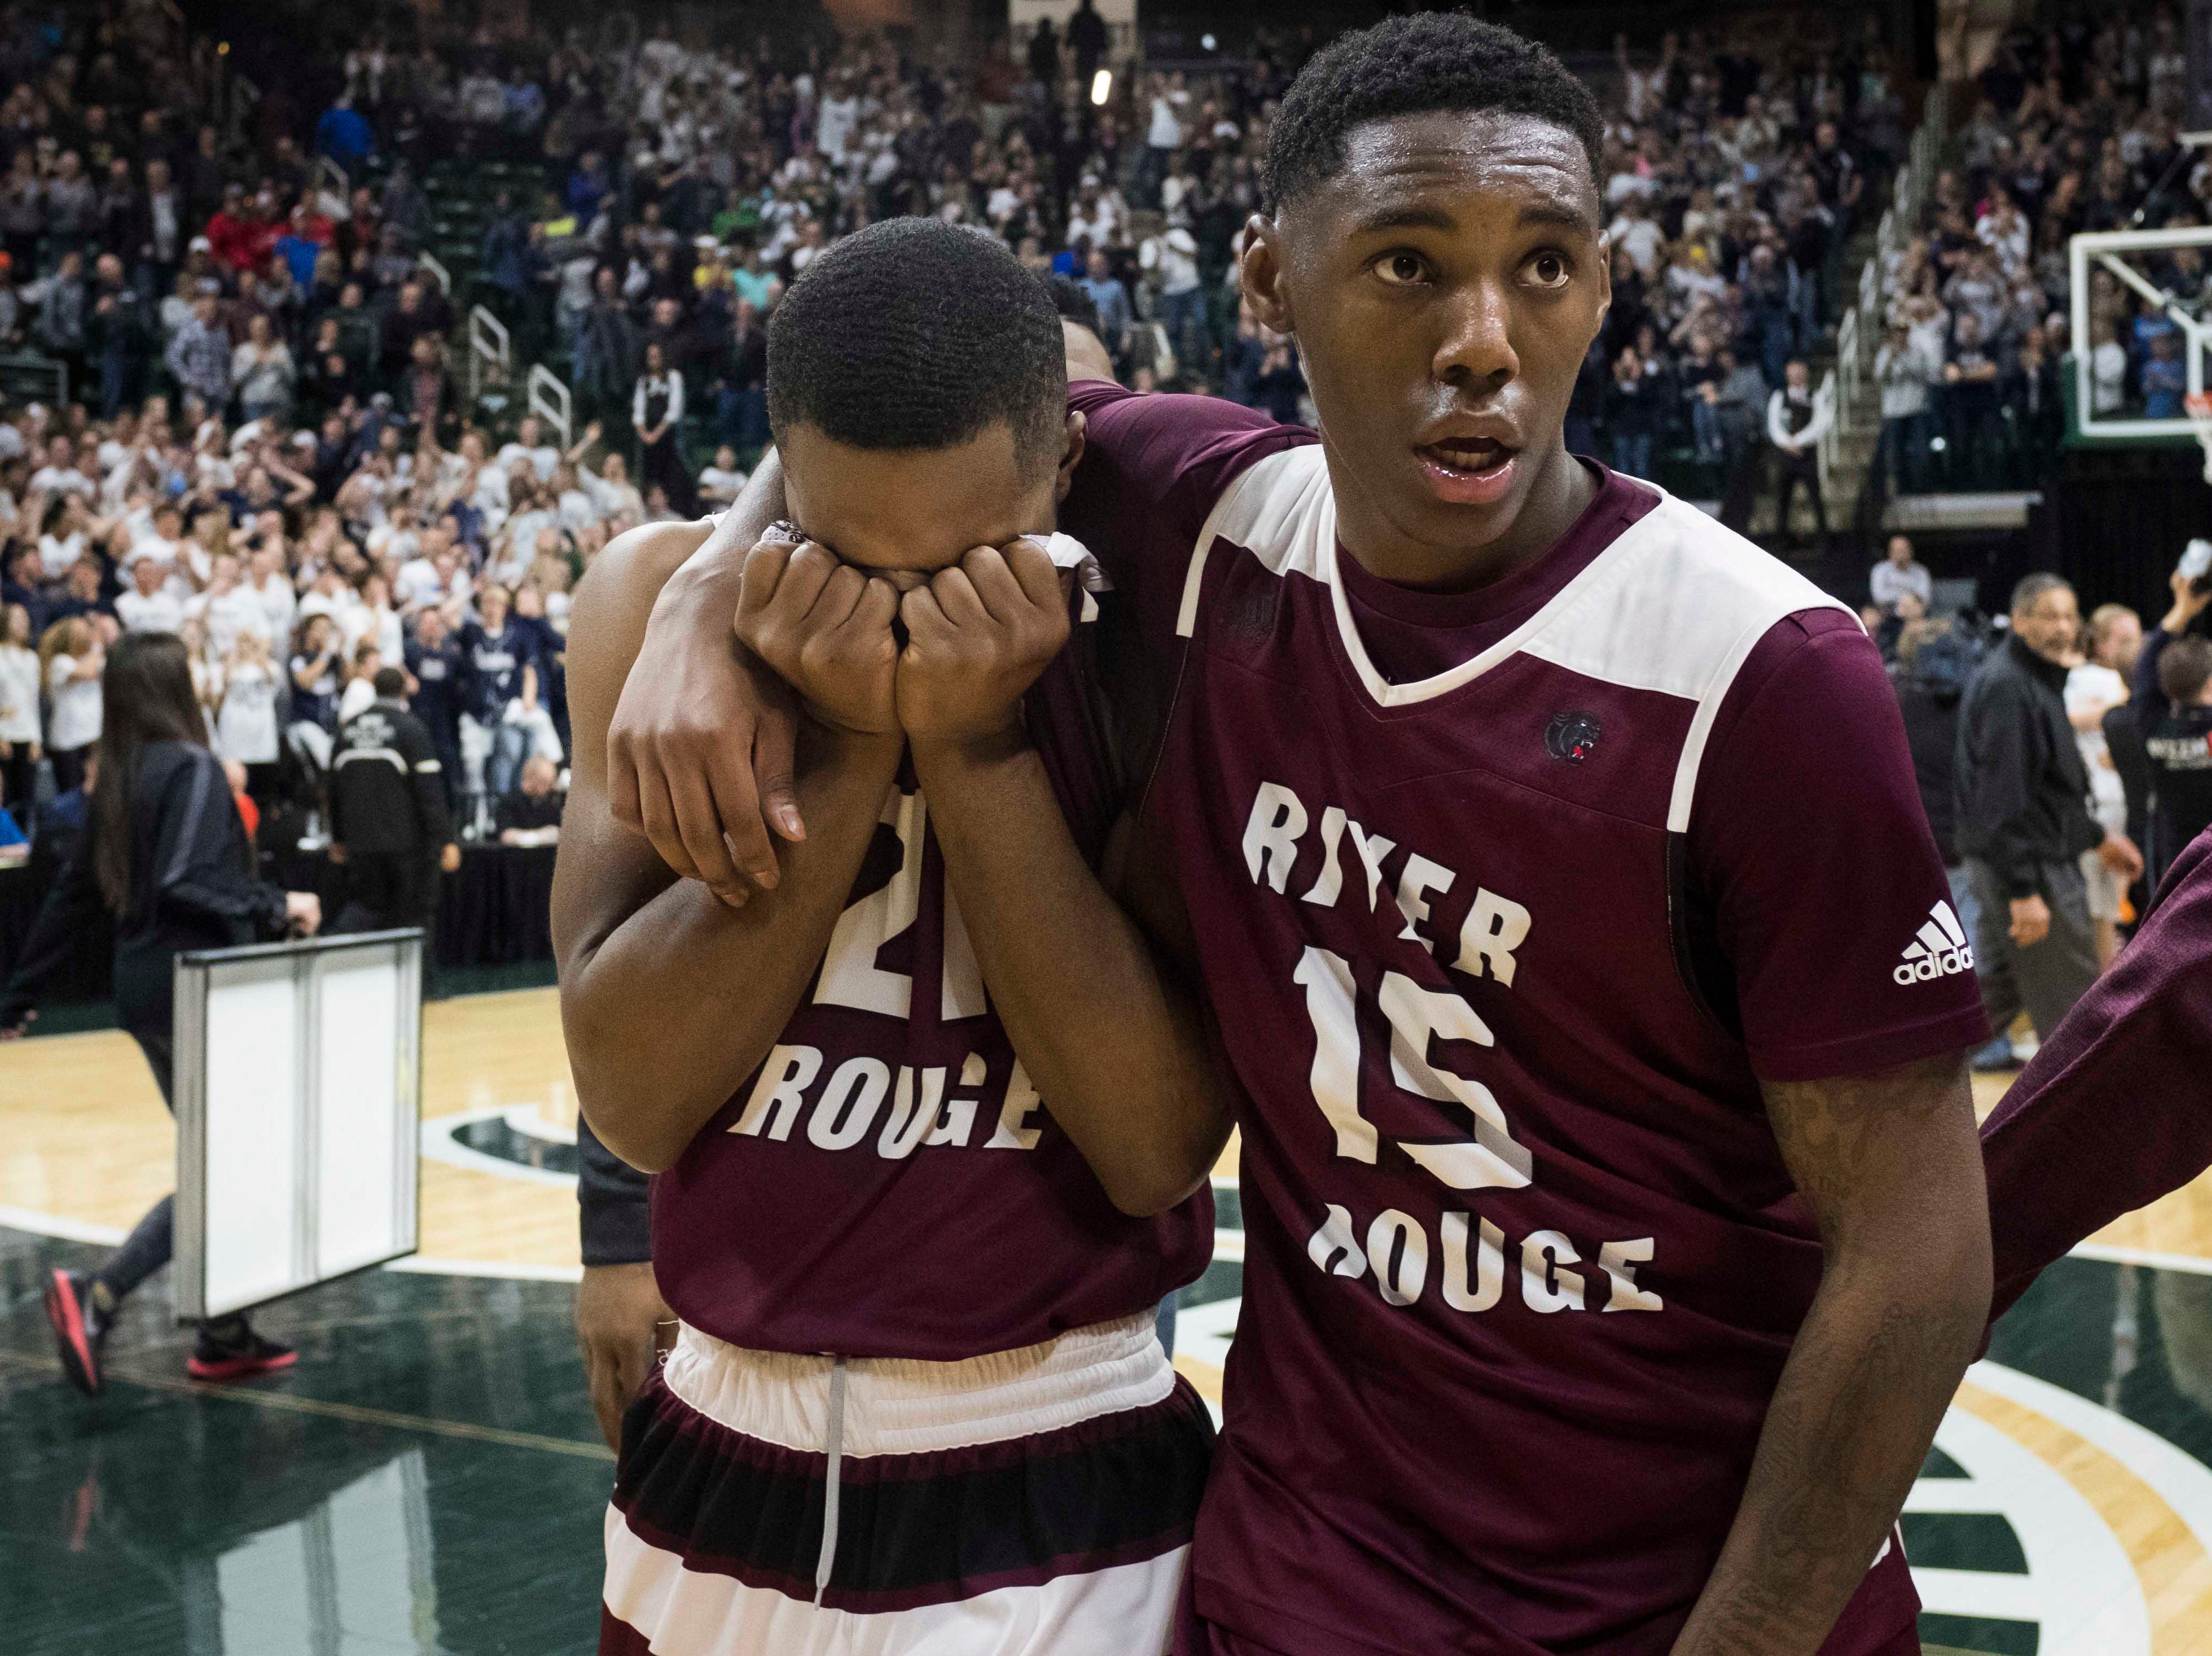 River Rouge's Nigel Colvin buries his face in his hands while teammate Kamal Hadden comforts him as they walk off the floor after losing in the Division 2 championship game.